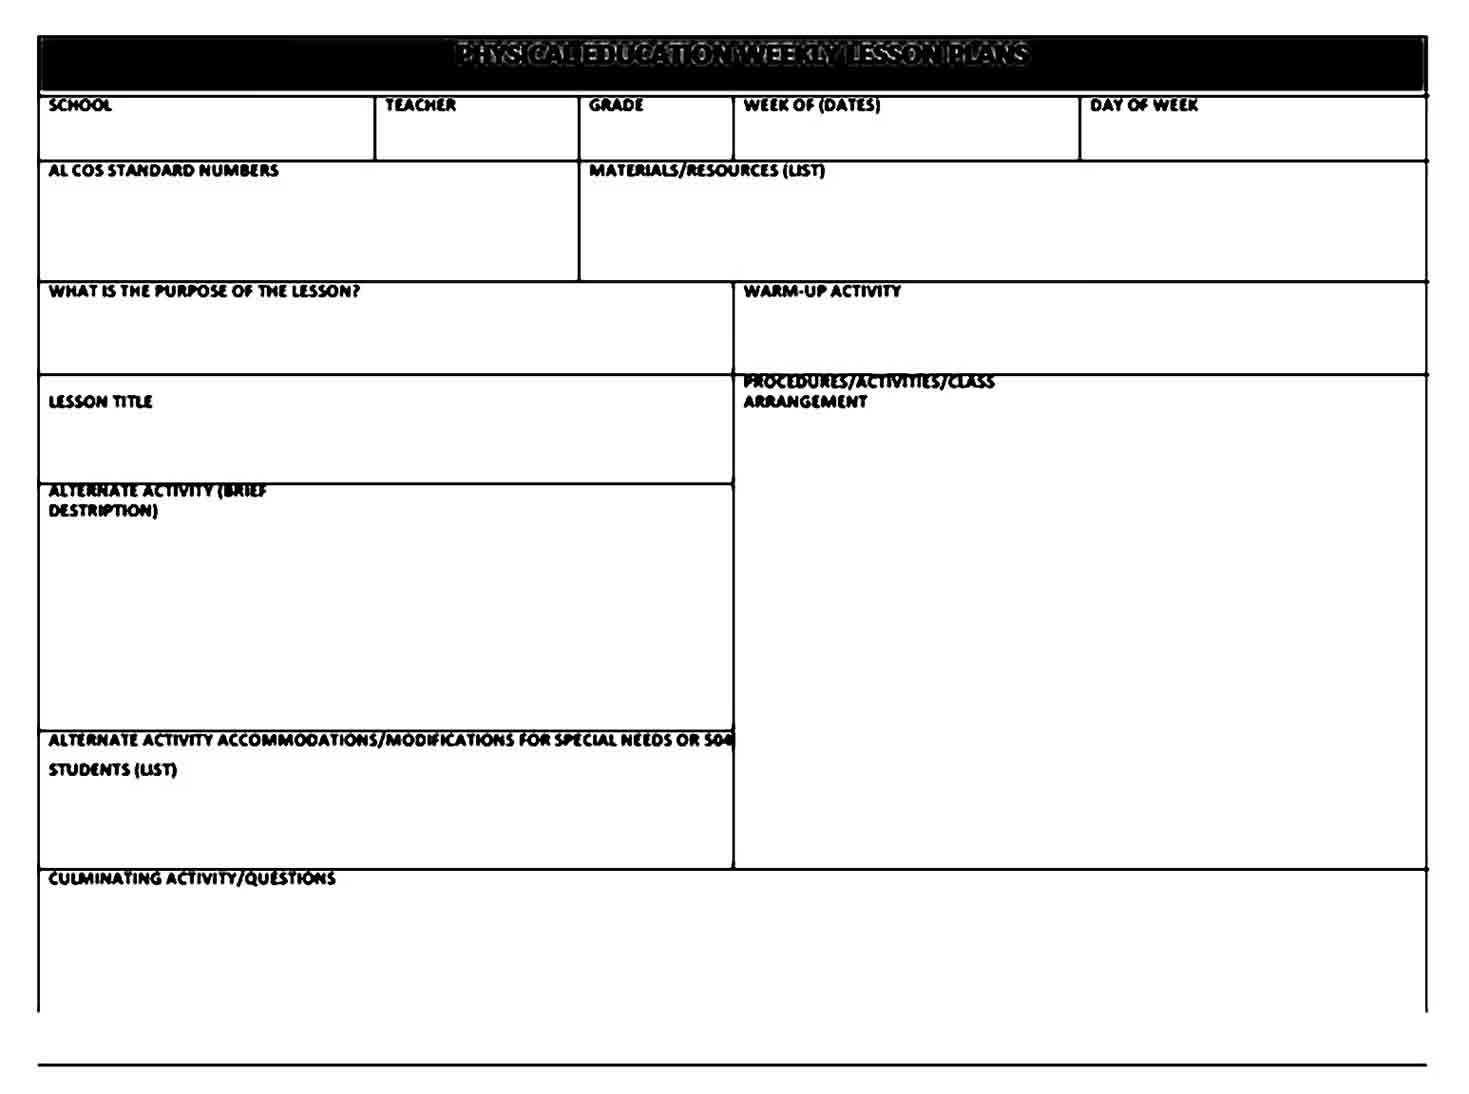 Example of Physical Education Lesson Plan templates